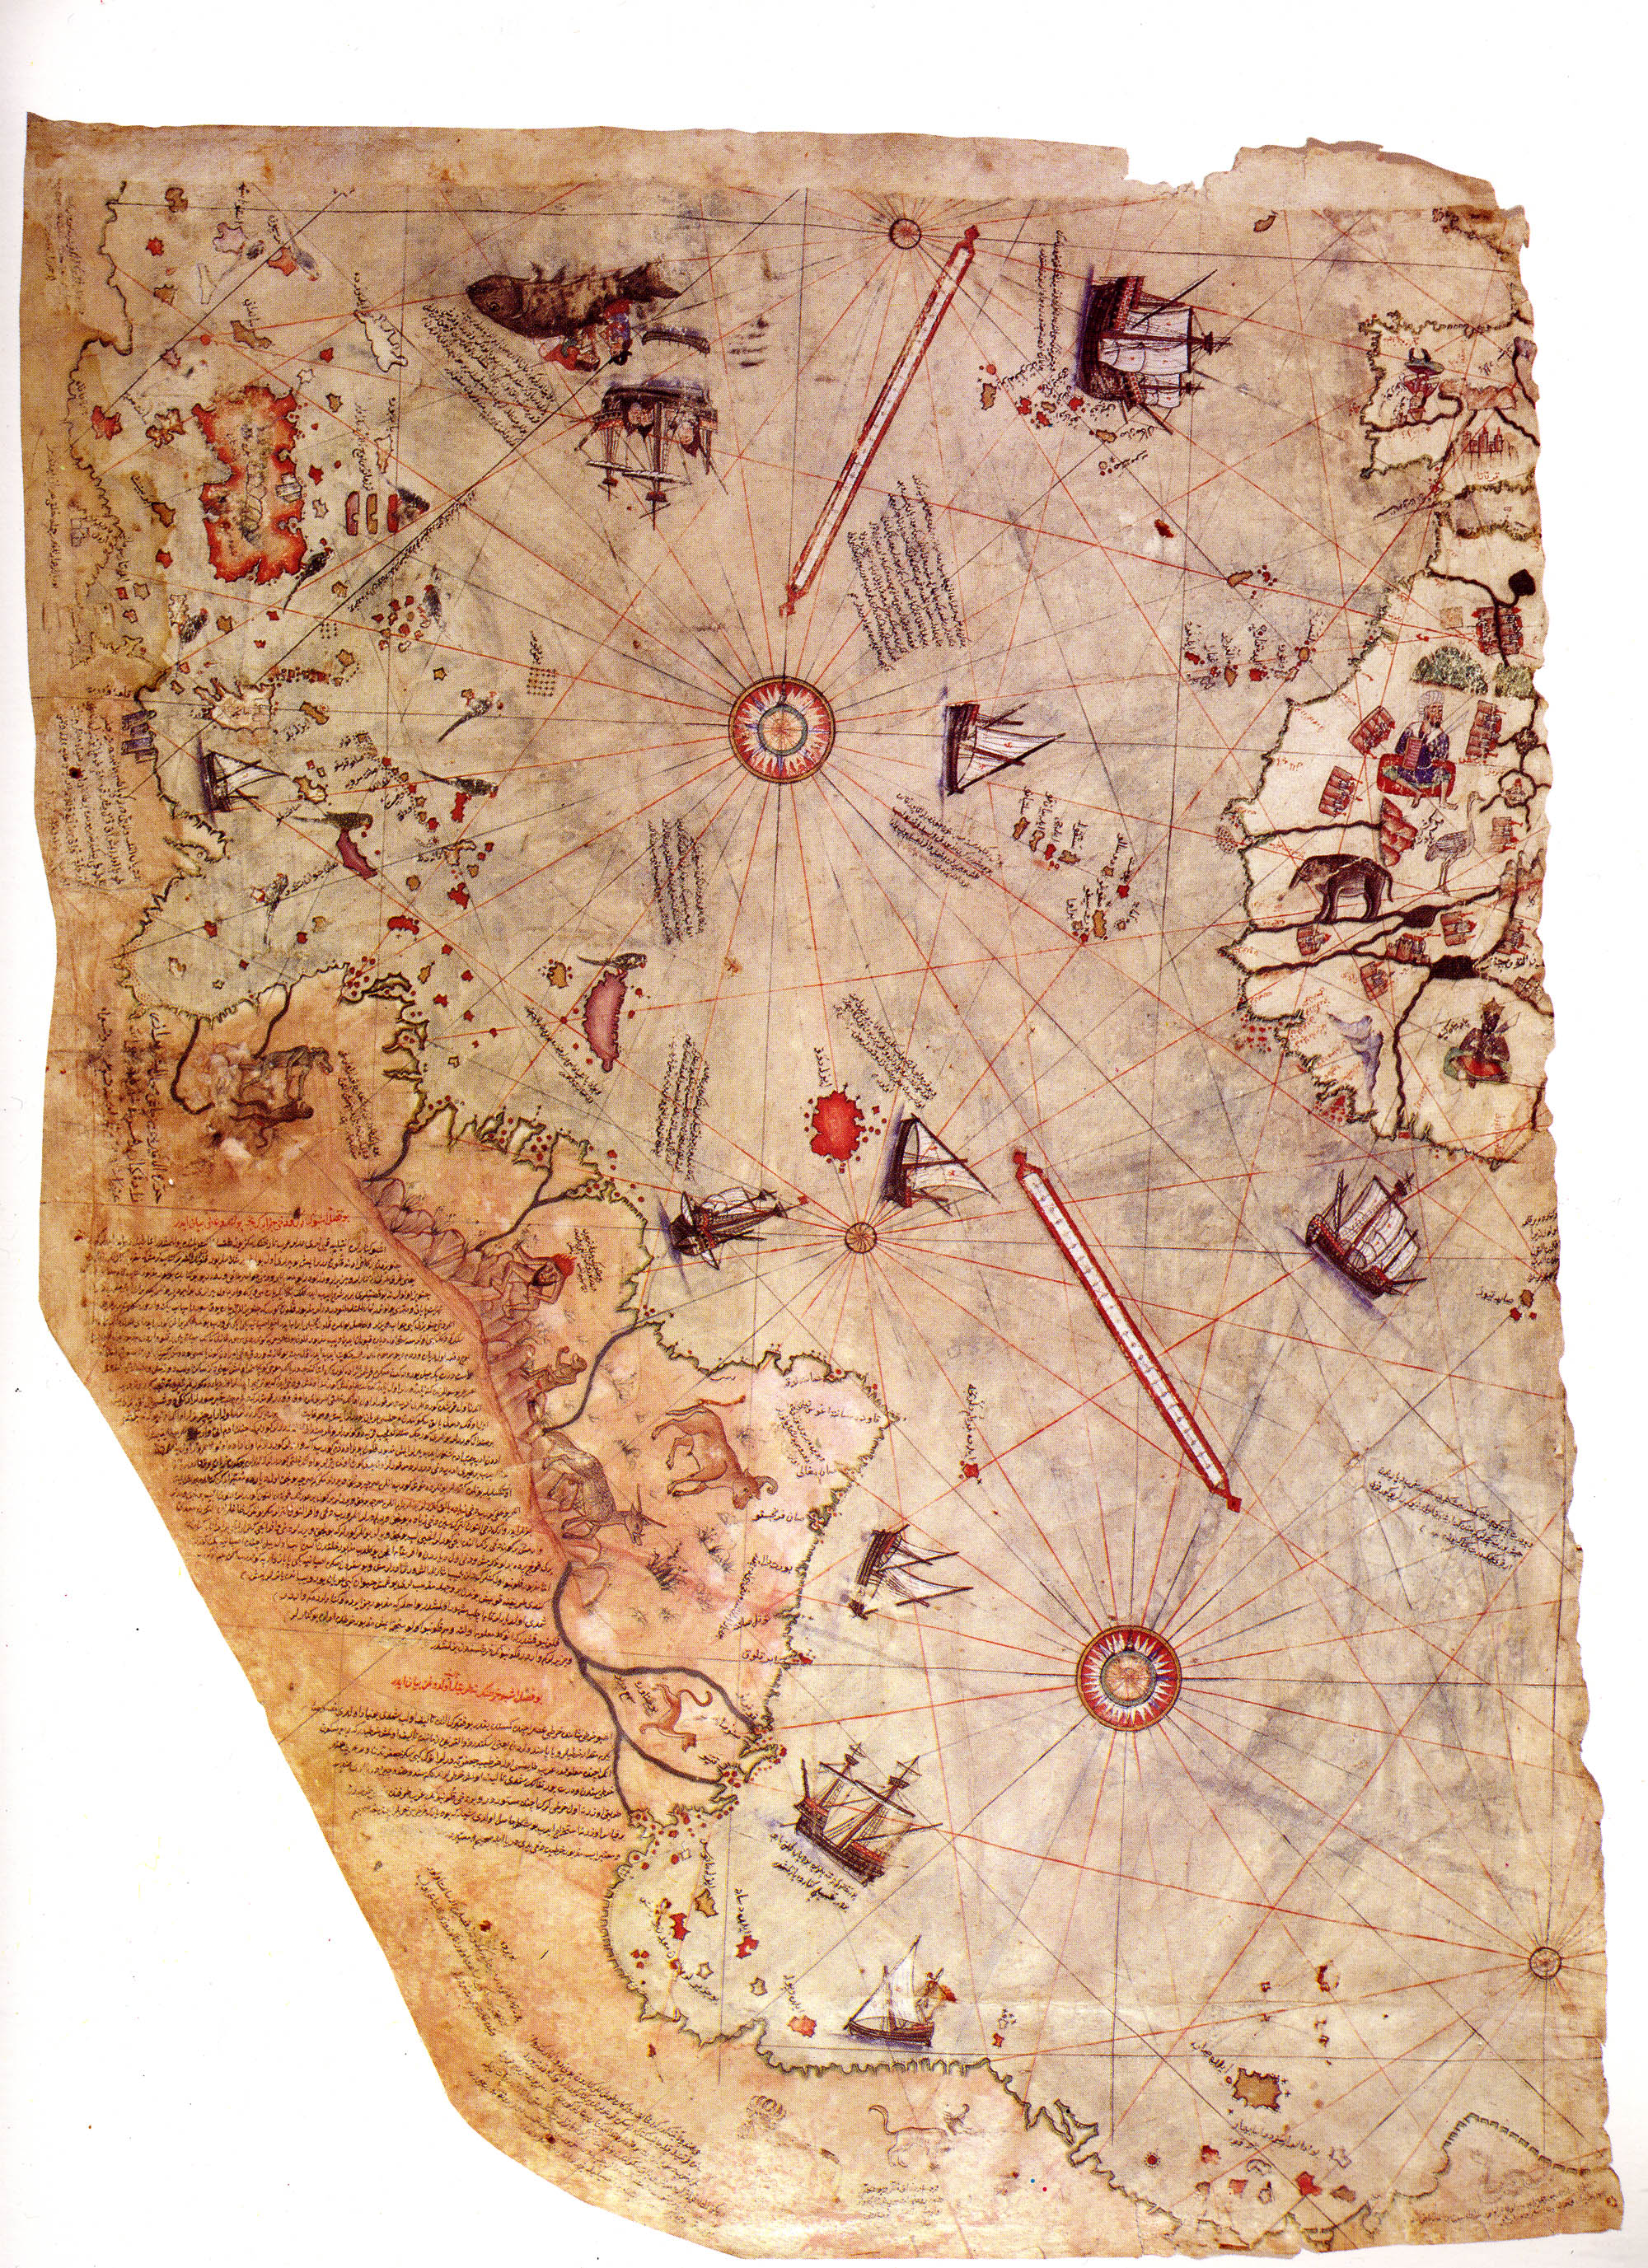 Surviving fragment of the first World Map of Ottoman Admiral Piri Reis drawn in 1513. Only half of the original map survives and is held at the Topkapi Museum in Istanbul.